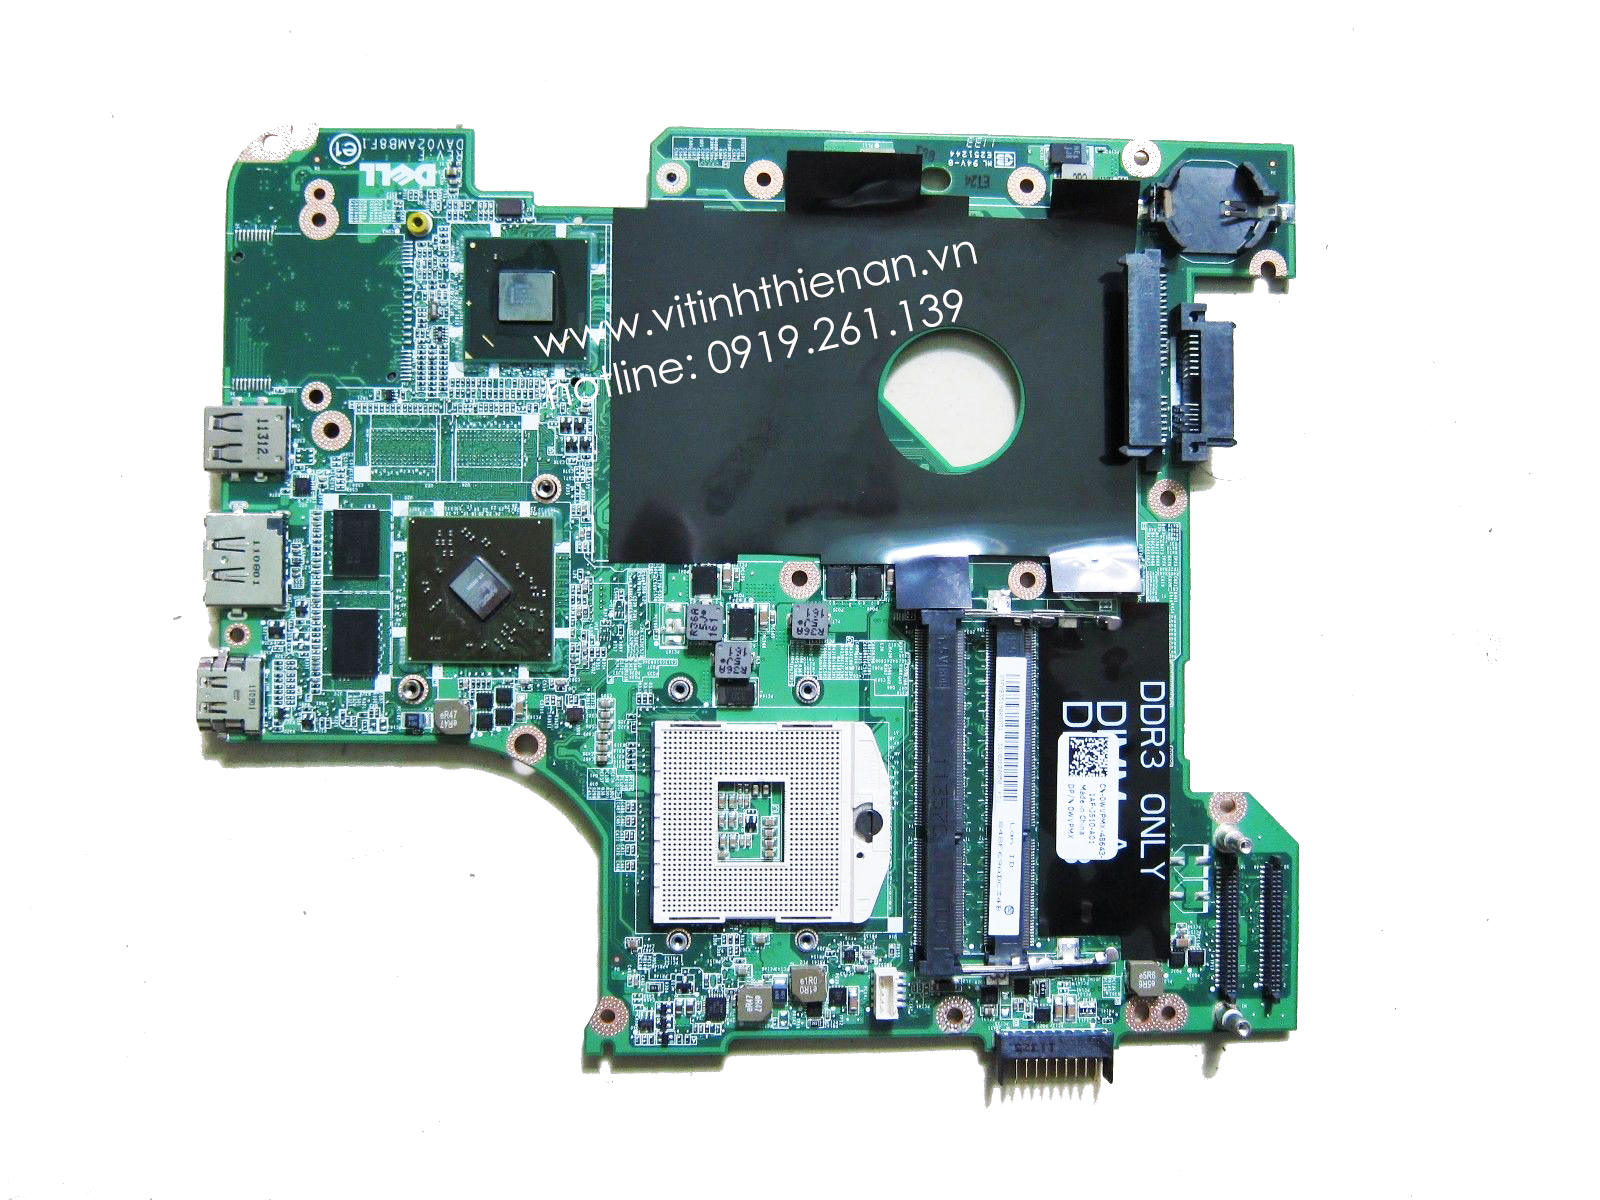 mainboard-laptop-dell-inspiron-n4110-vga-share-1026